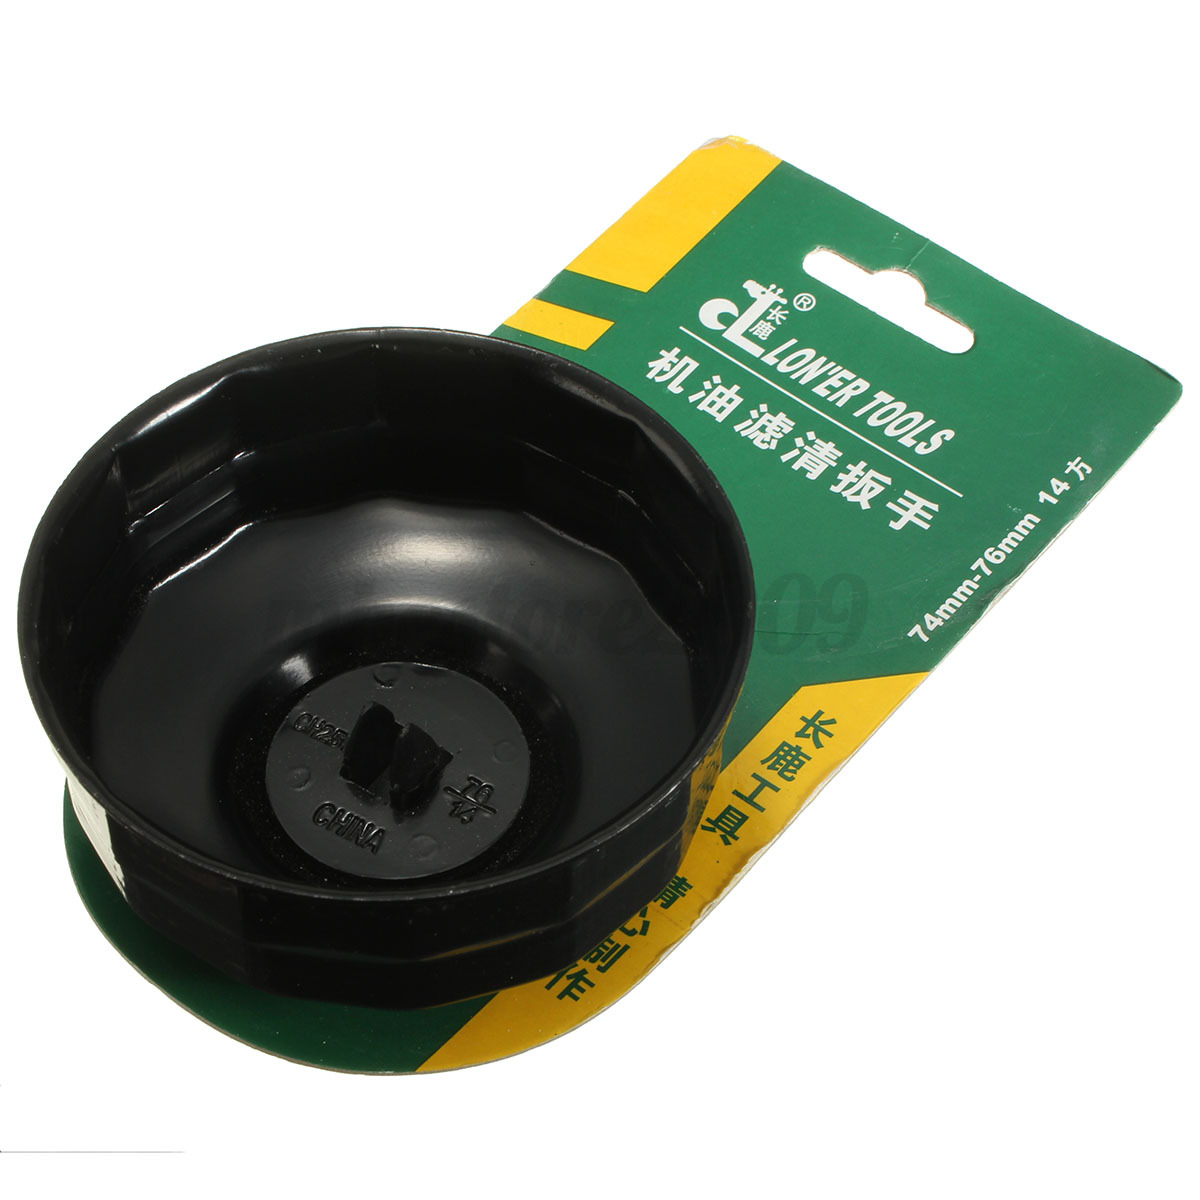 Bmw oil filter cap wrench bmw free engine image for user for Mercedes benz oil filter cap wrench